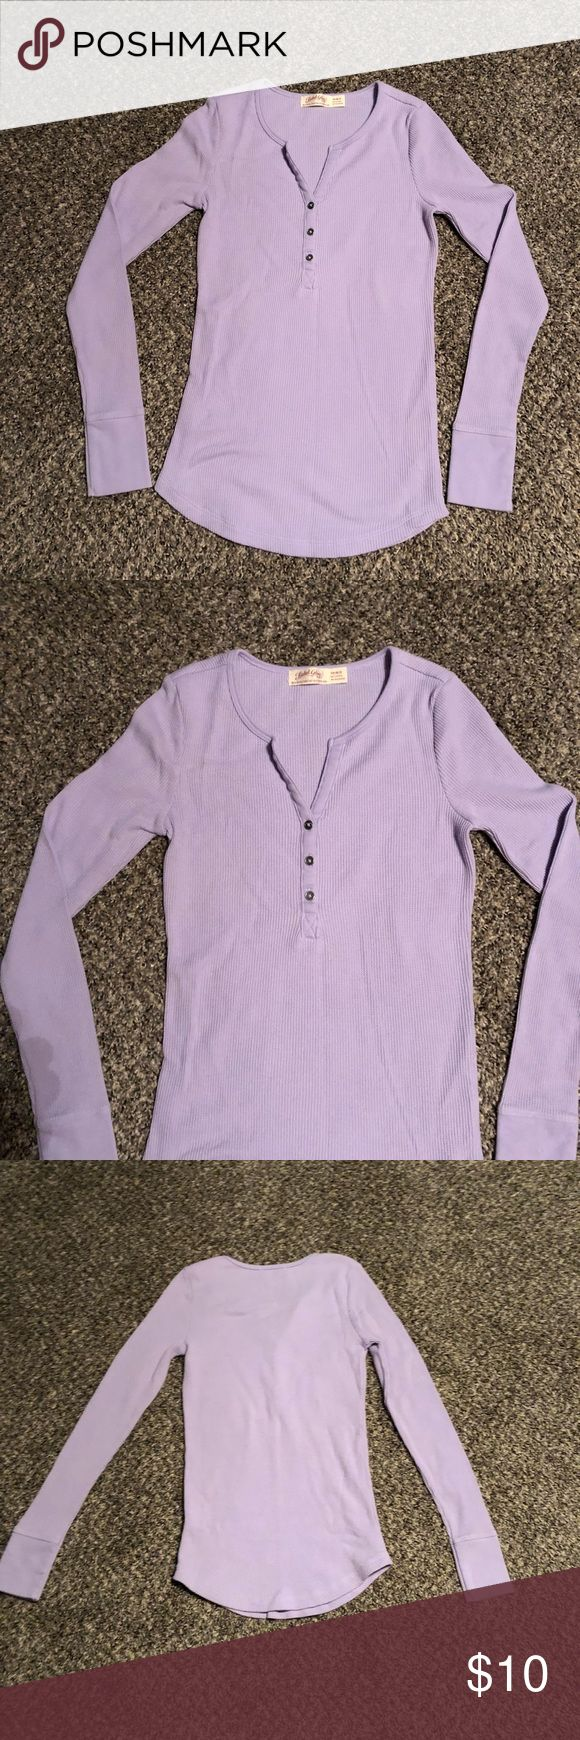 Faded Glory light purple long sleeved top Light purple long sleeved top.  Brand: Faded Glory. Three buttons at neck.  Materials:  60% cotton  40% polyester Size:  XS. 0 - 2  Measurements:  Length:  24 inches  Bust:  12 1/2 inches  Waist:  11 1/2 inches  Listing:   Box: Faded Glory Tops Tees - Long Sleeve